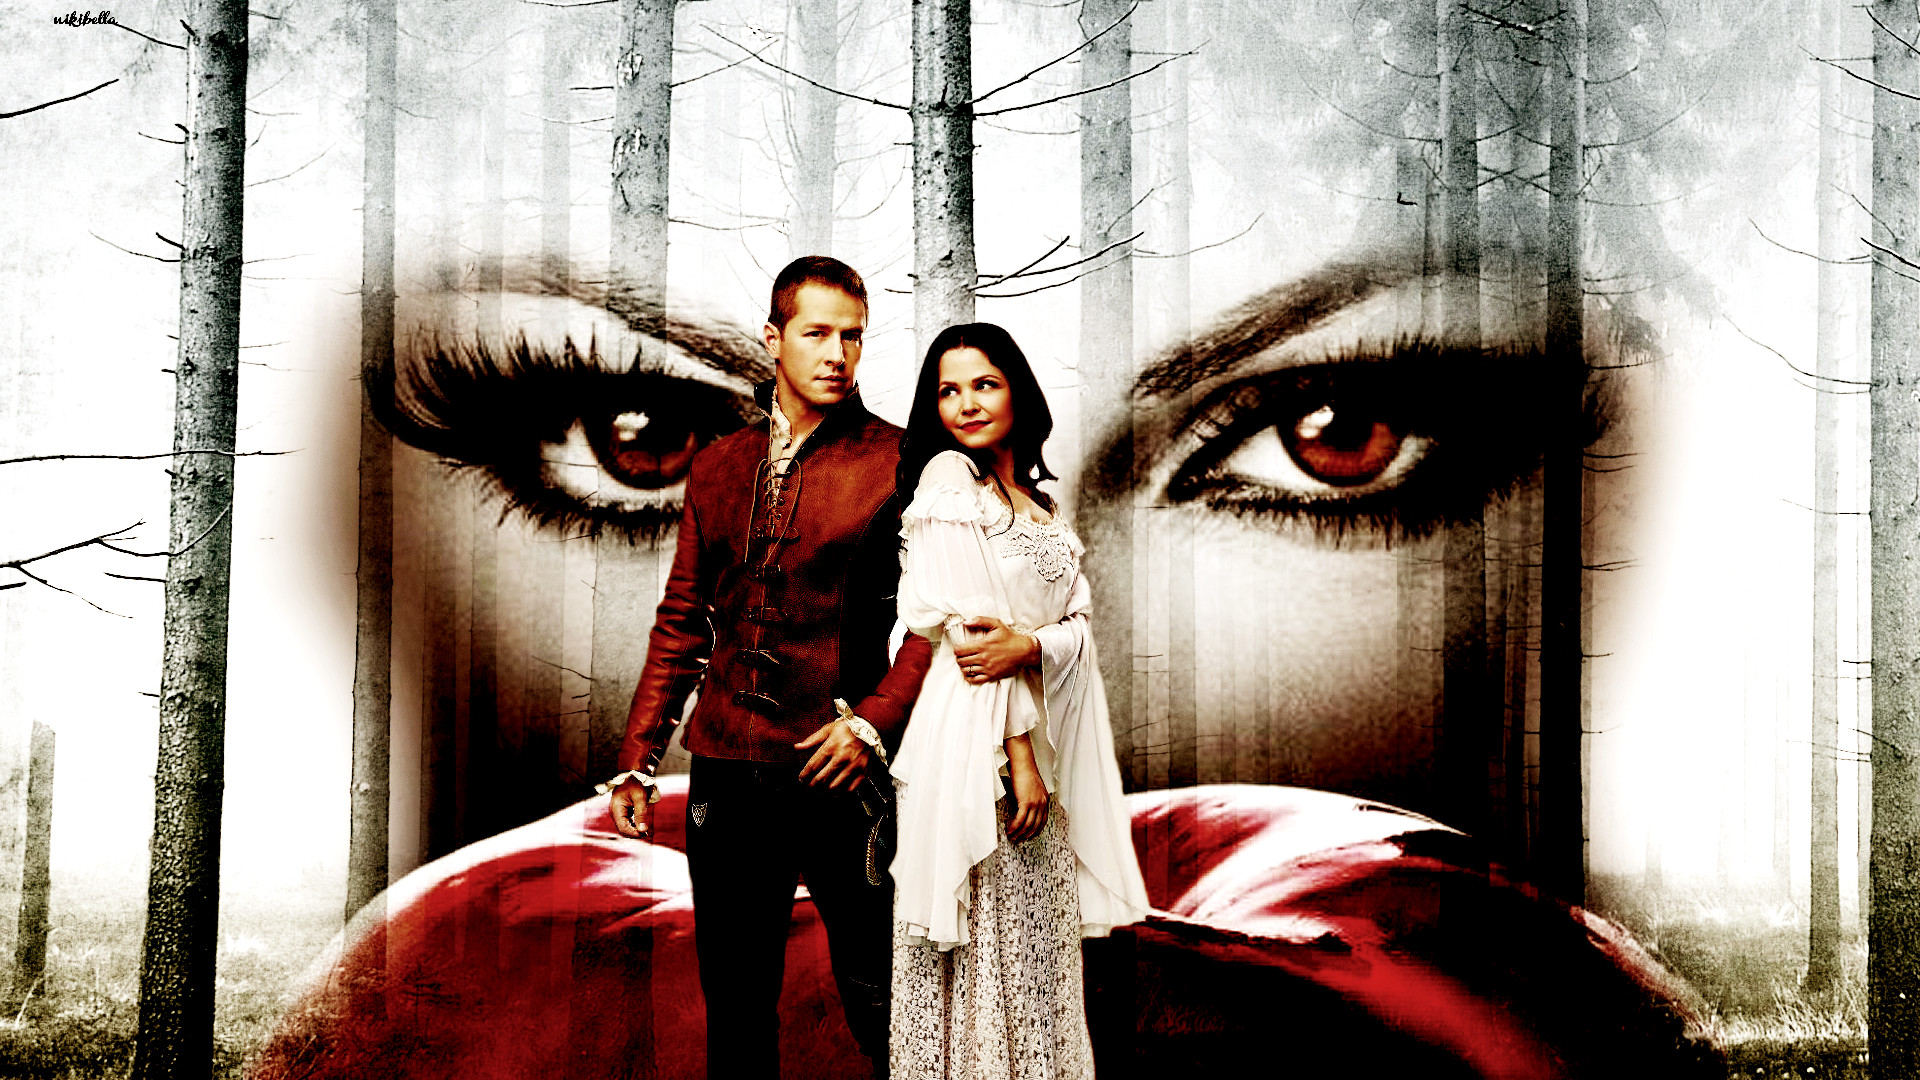 11 best OnCe UpoN A TiMe images on Pinterest | Once upon a time, Google  search and Christmas time